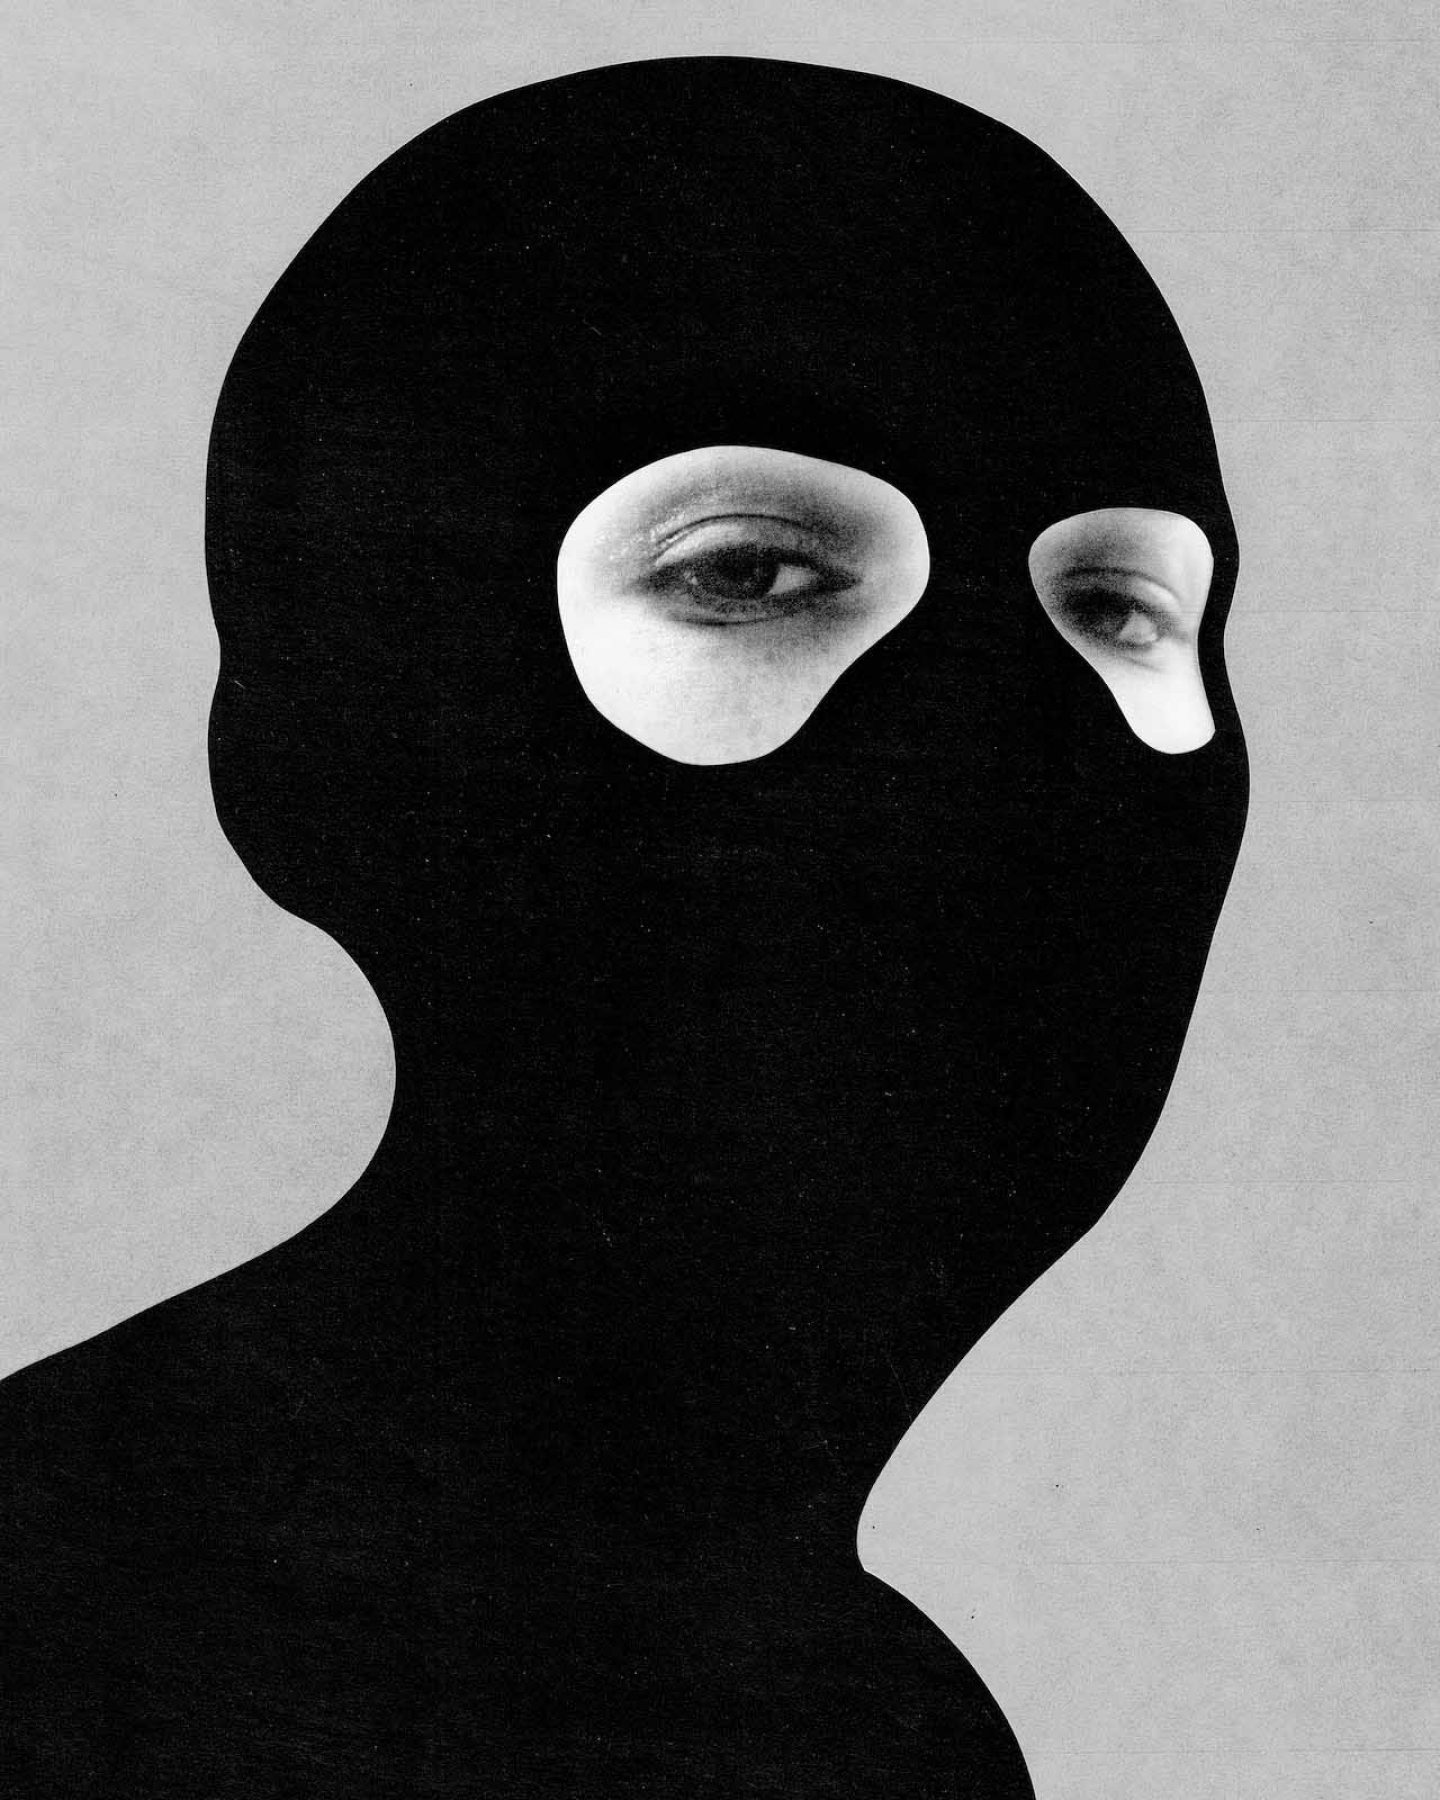 Art_Jesse_Draxler_Eerie_Collages_09